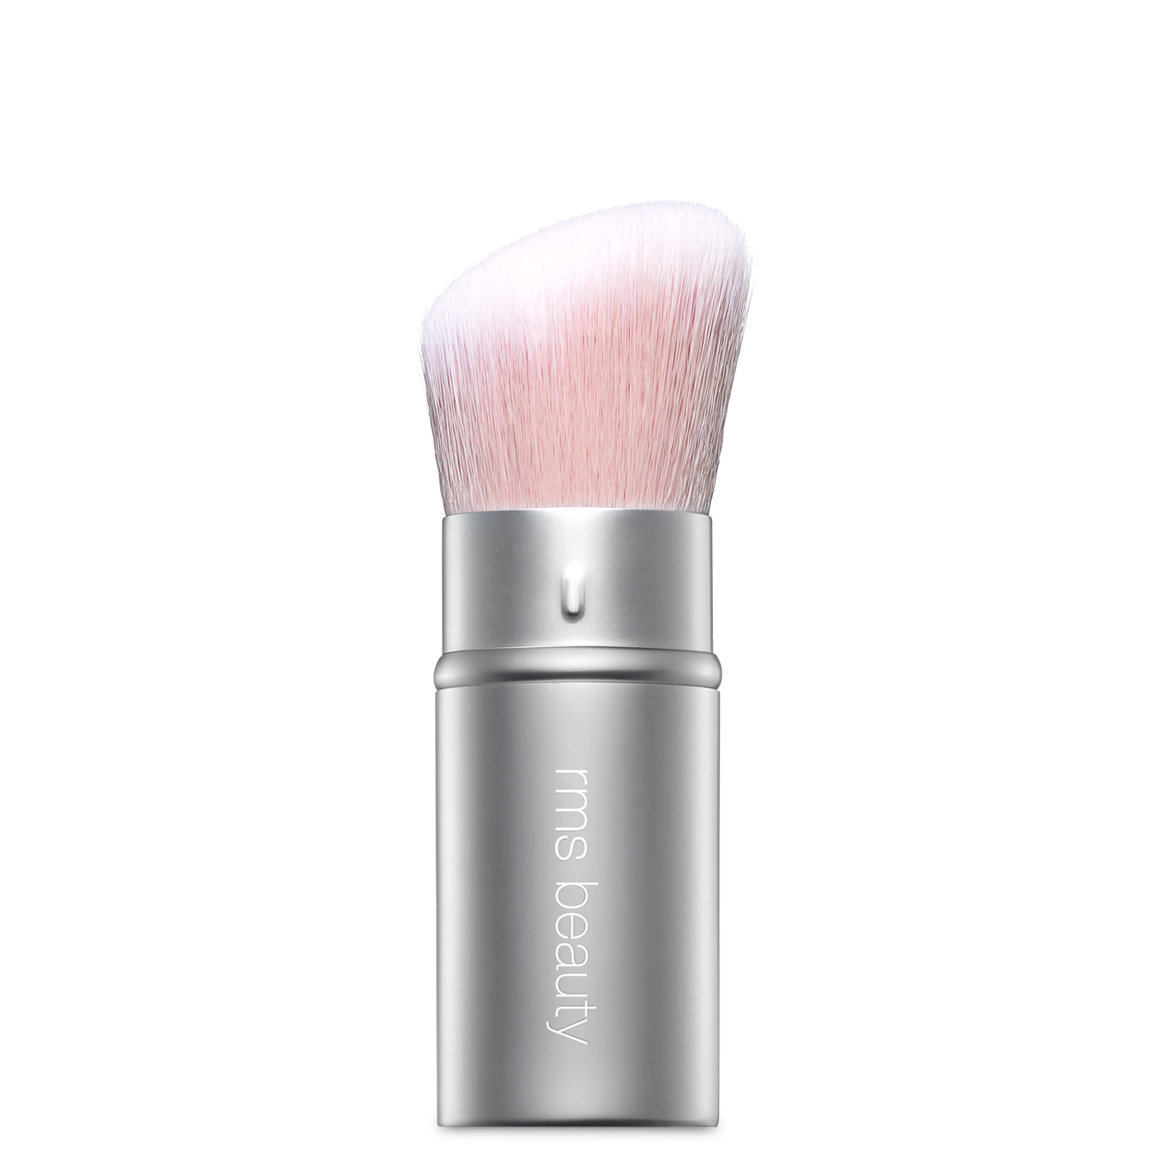 rms beauty Luminizing Powder Retractable Brush alternative view 1 - product swatch.